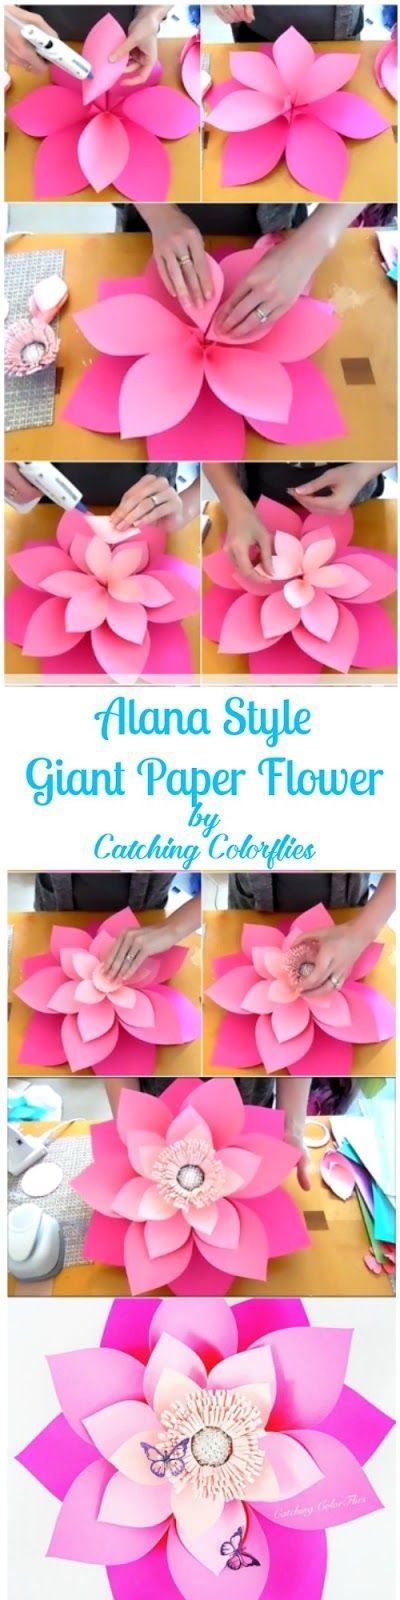 how to make paper giant flowers diy